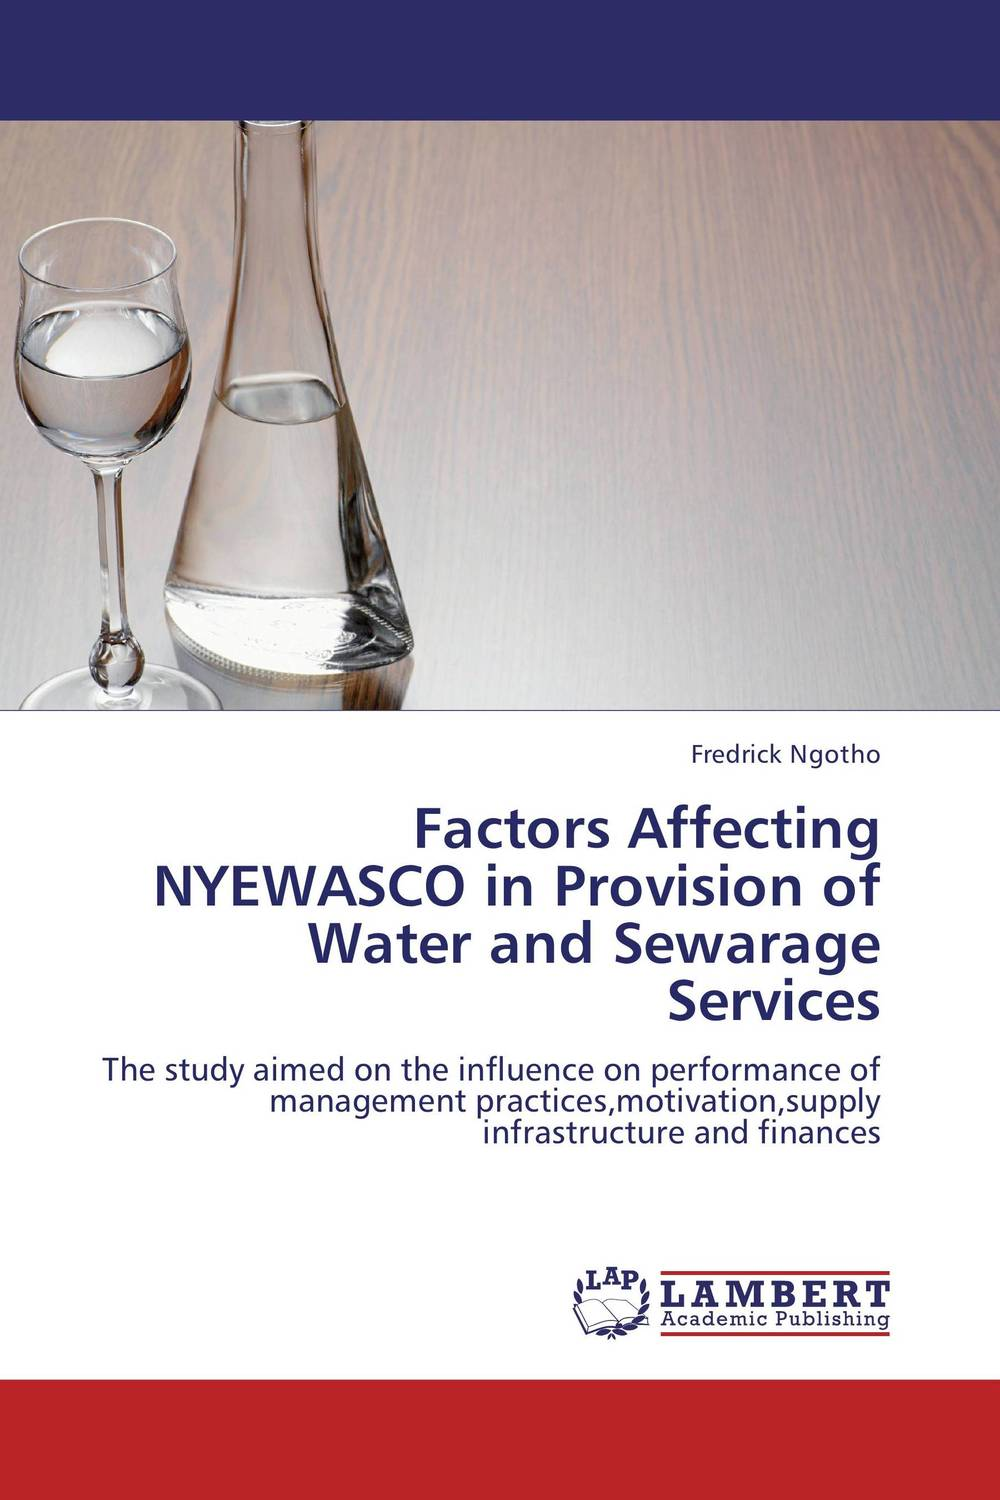 Factors Affecting NYEWASCO in Provision of Water and Sewarage Services